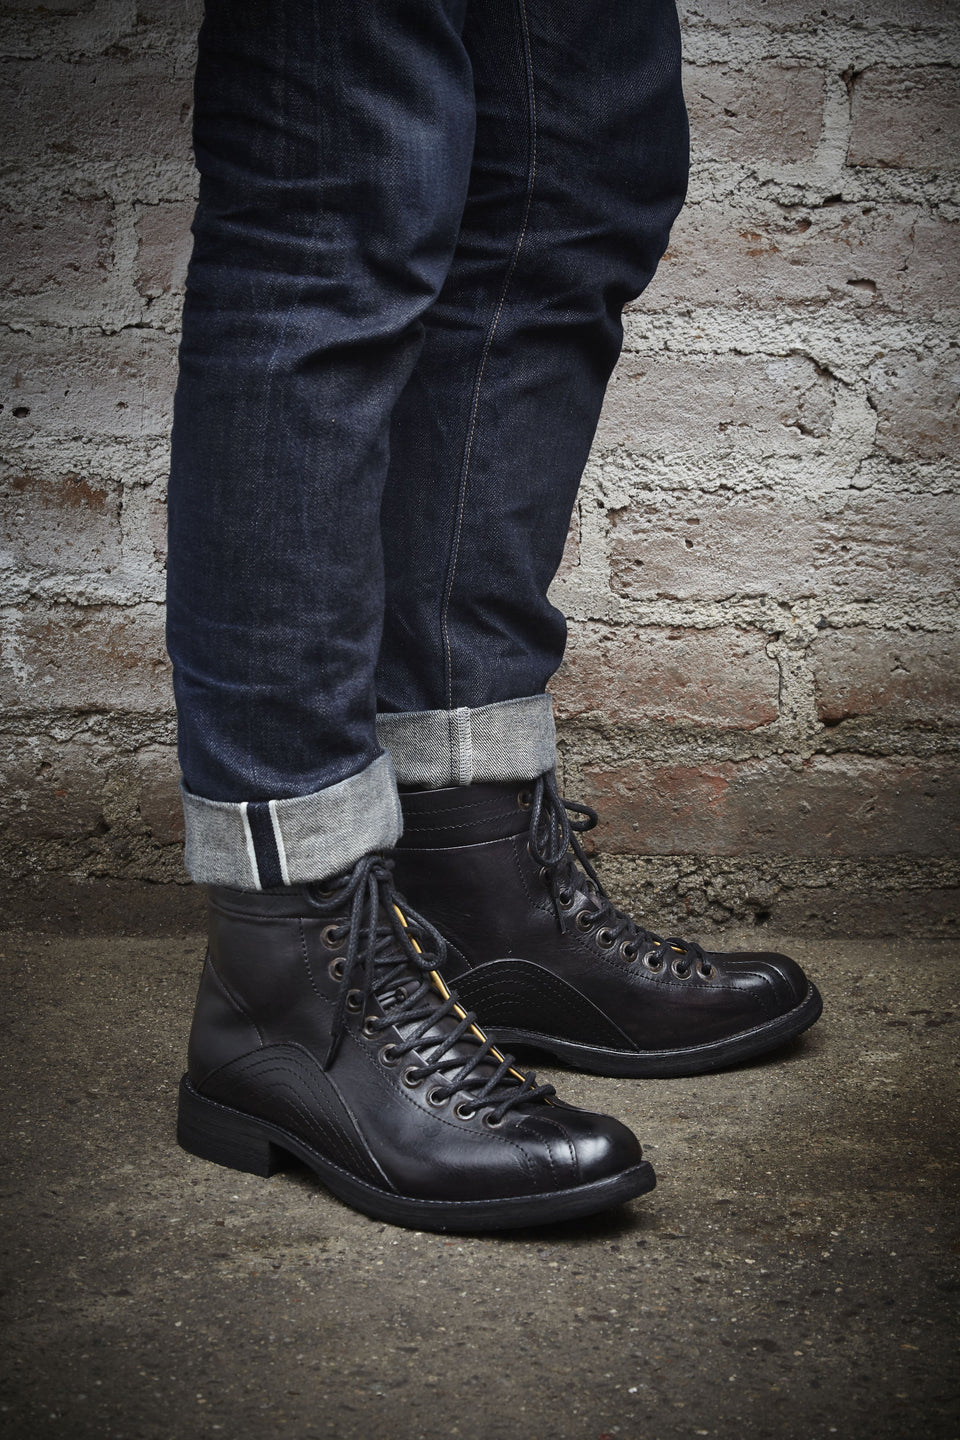 Lubbock Motorcycle Boots By Umberto Luce